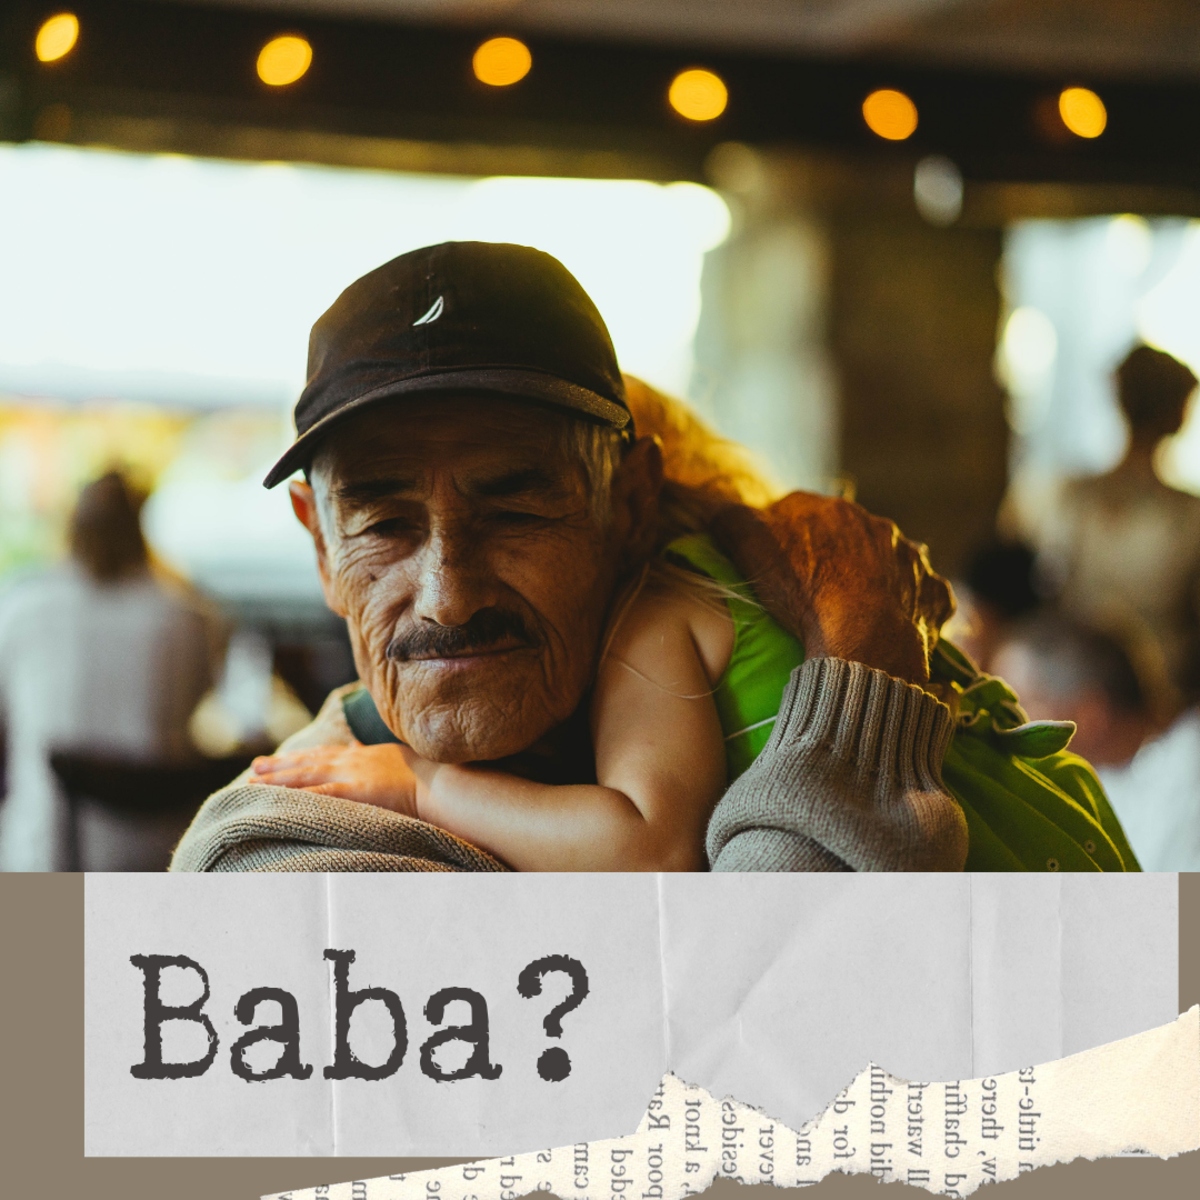 Are you a Baba?